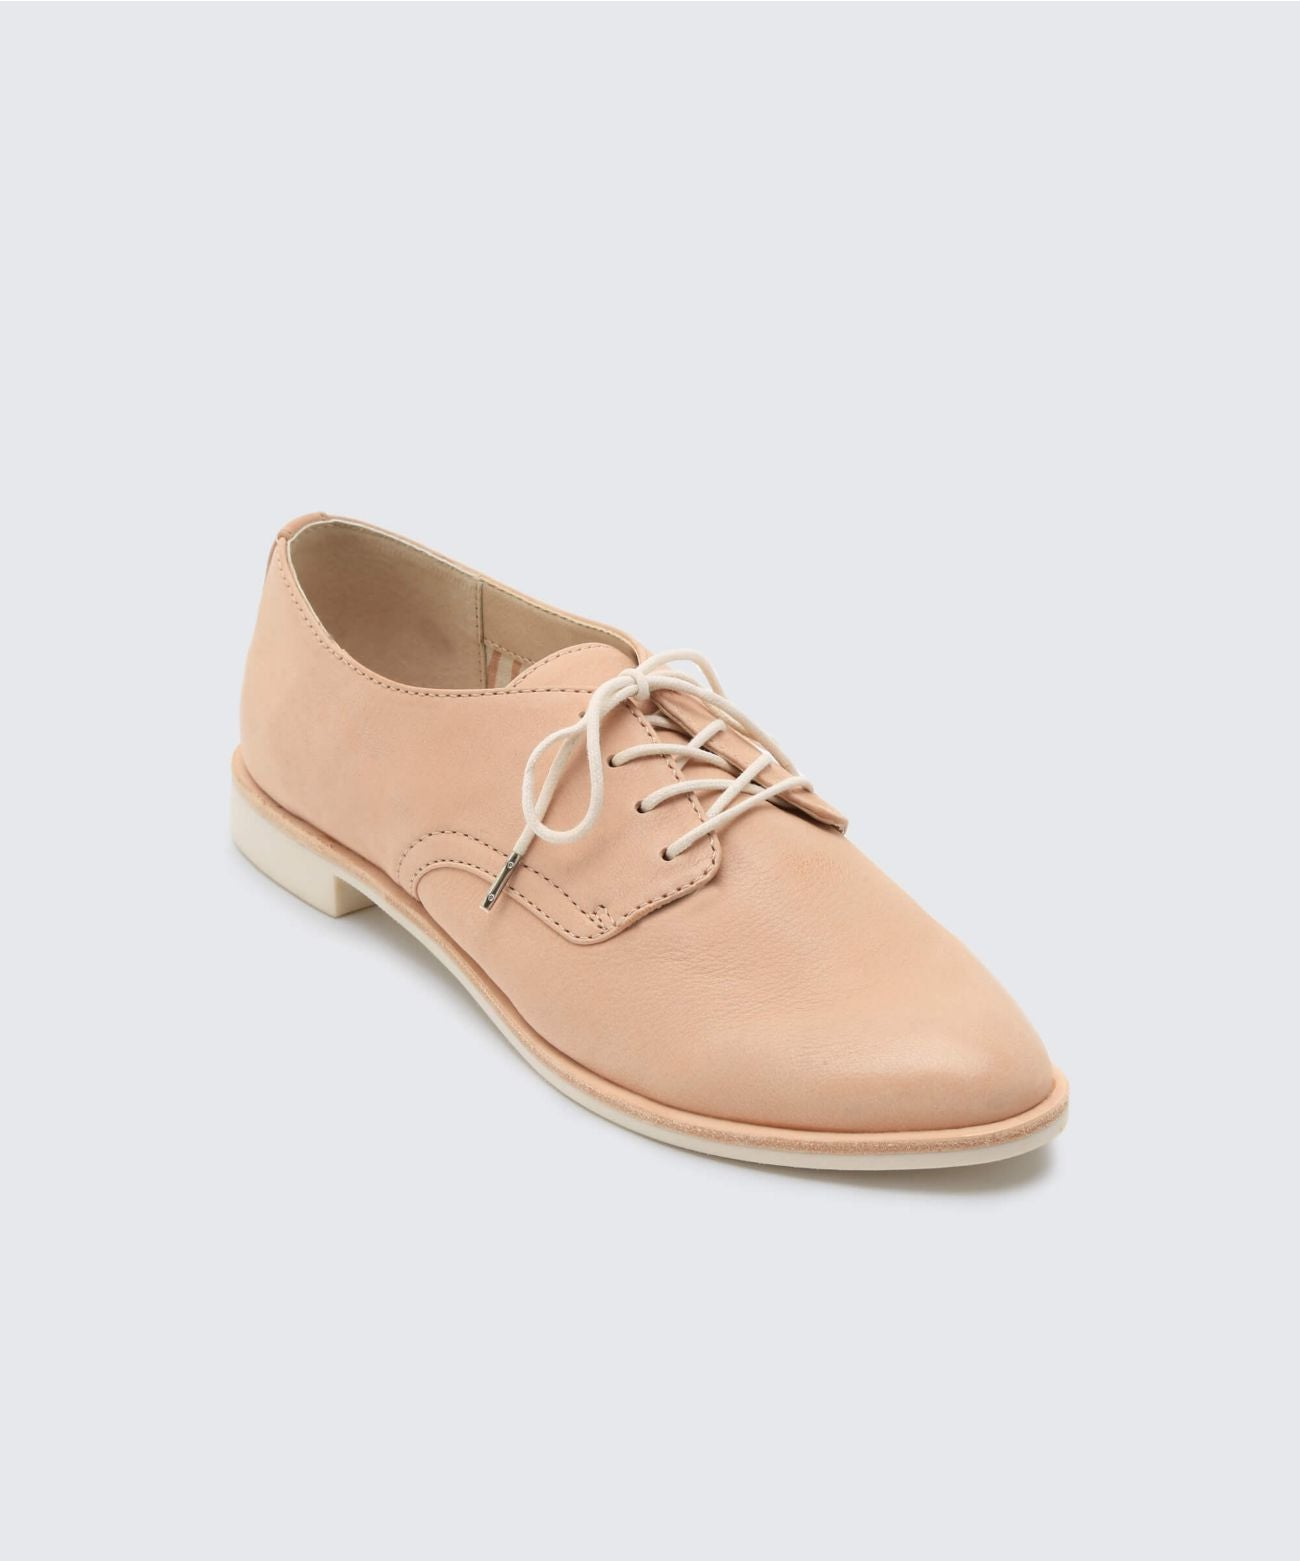 730a6ded2698 KYLE FLATS NUDE – Dolce Vita